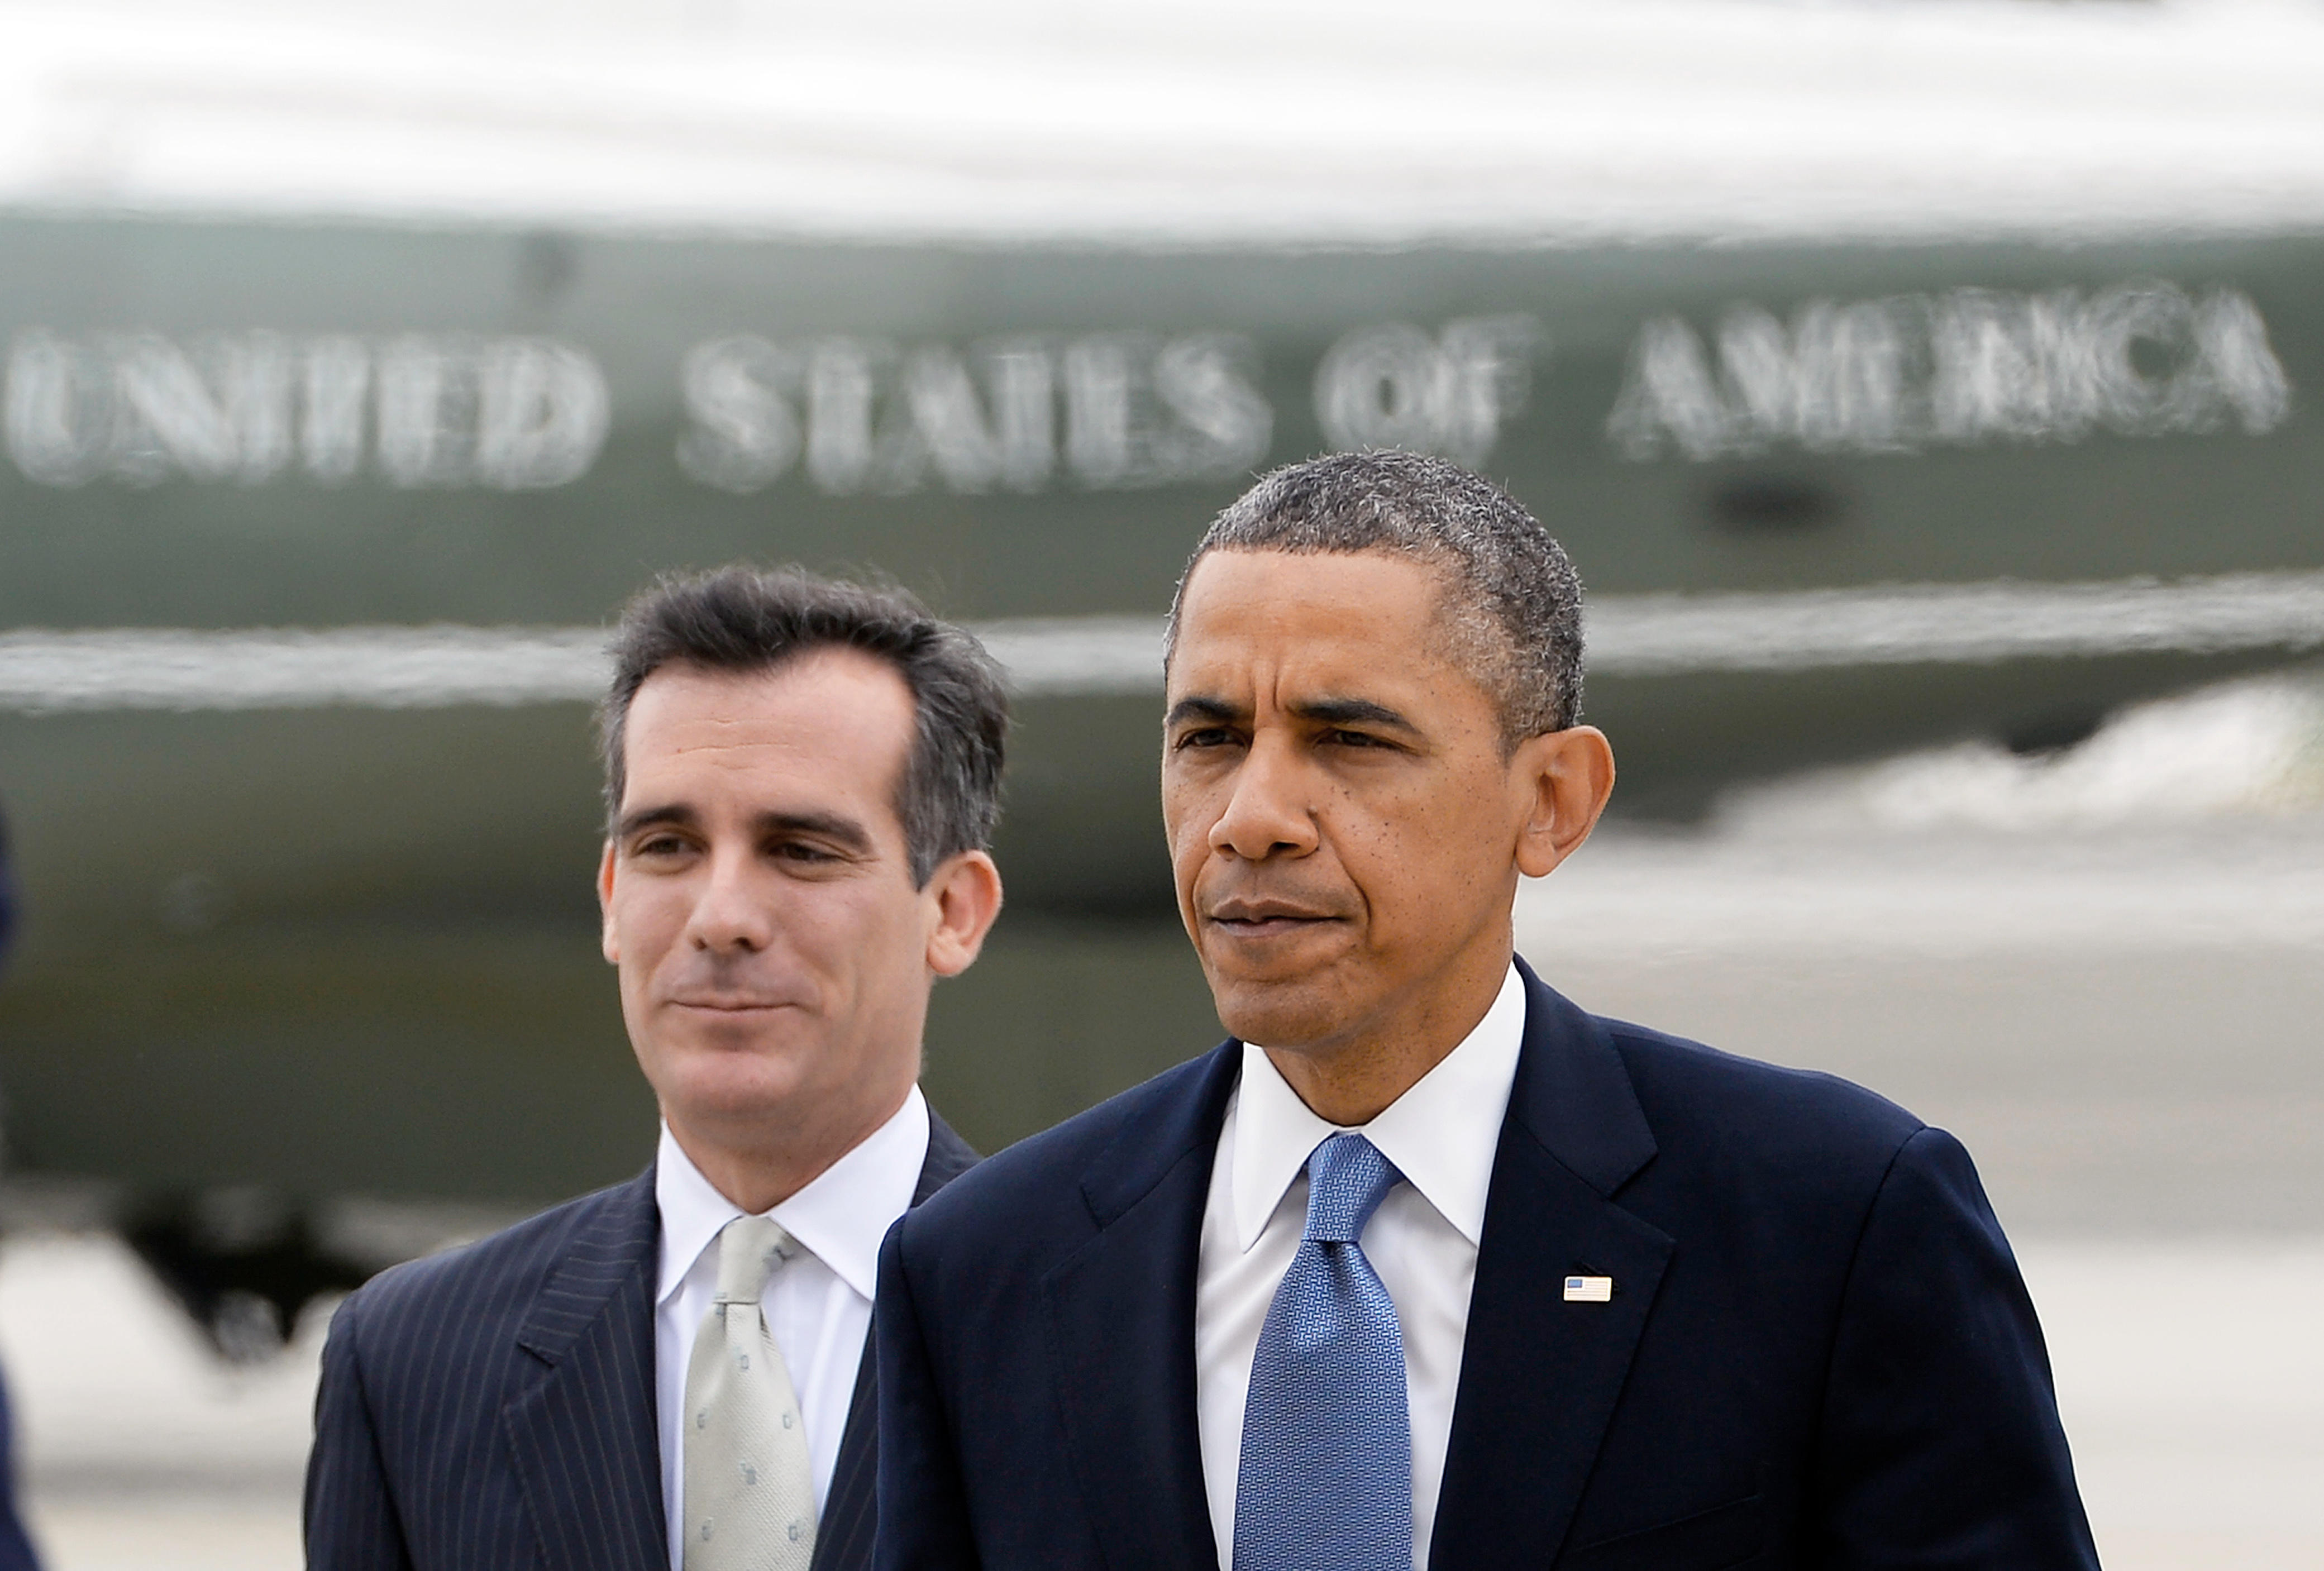 Obama Blvd : Los Angeles to rename Rodeo Road after former